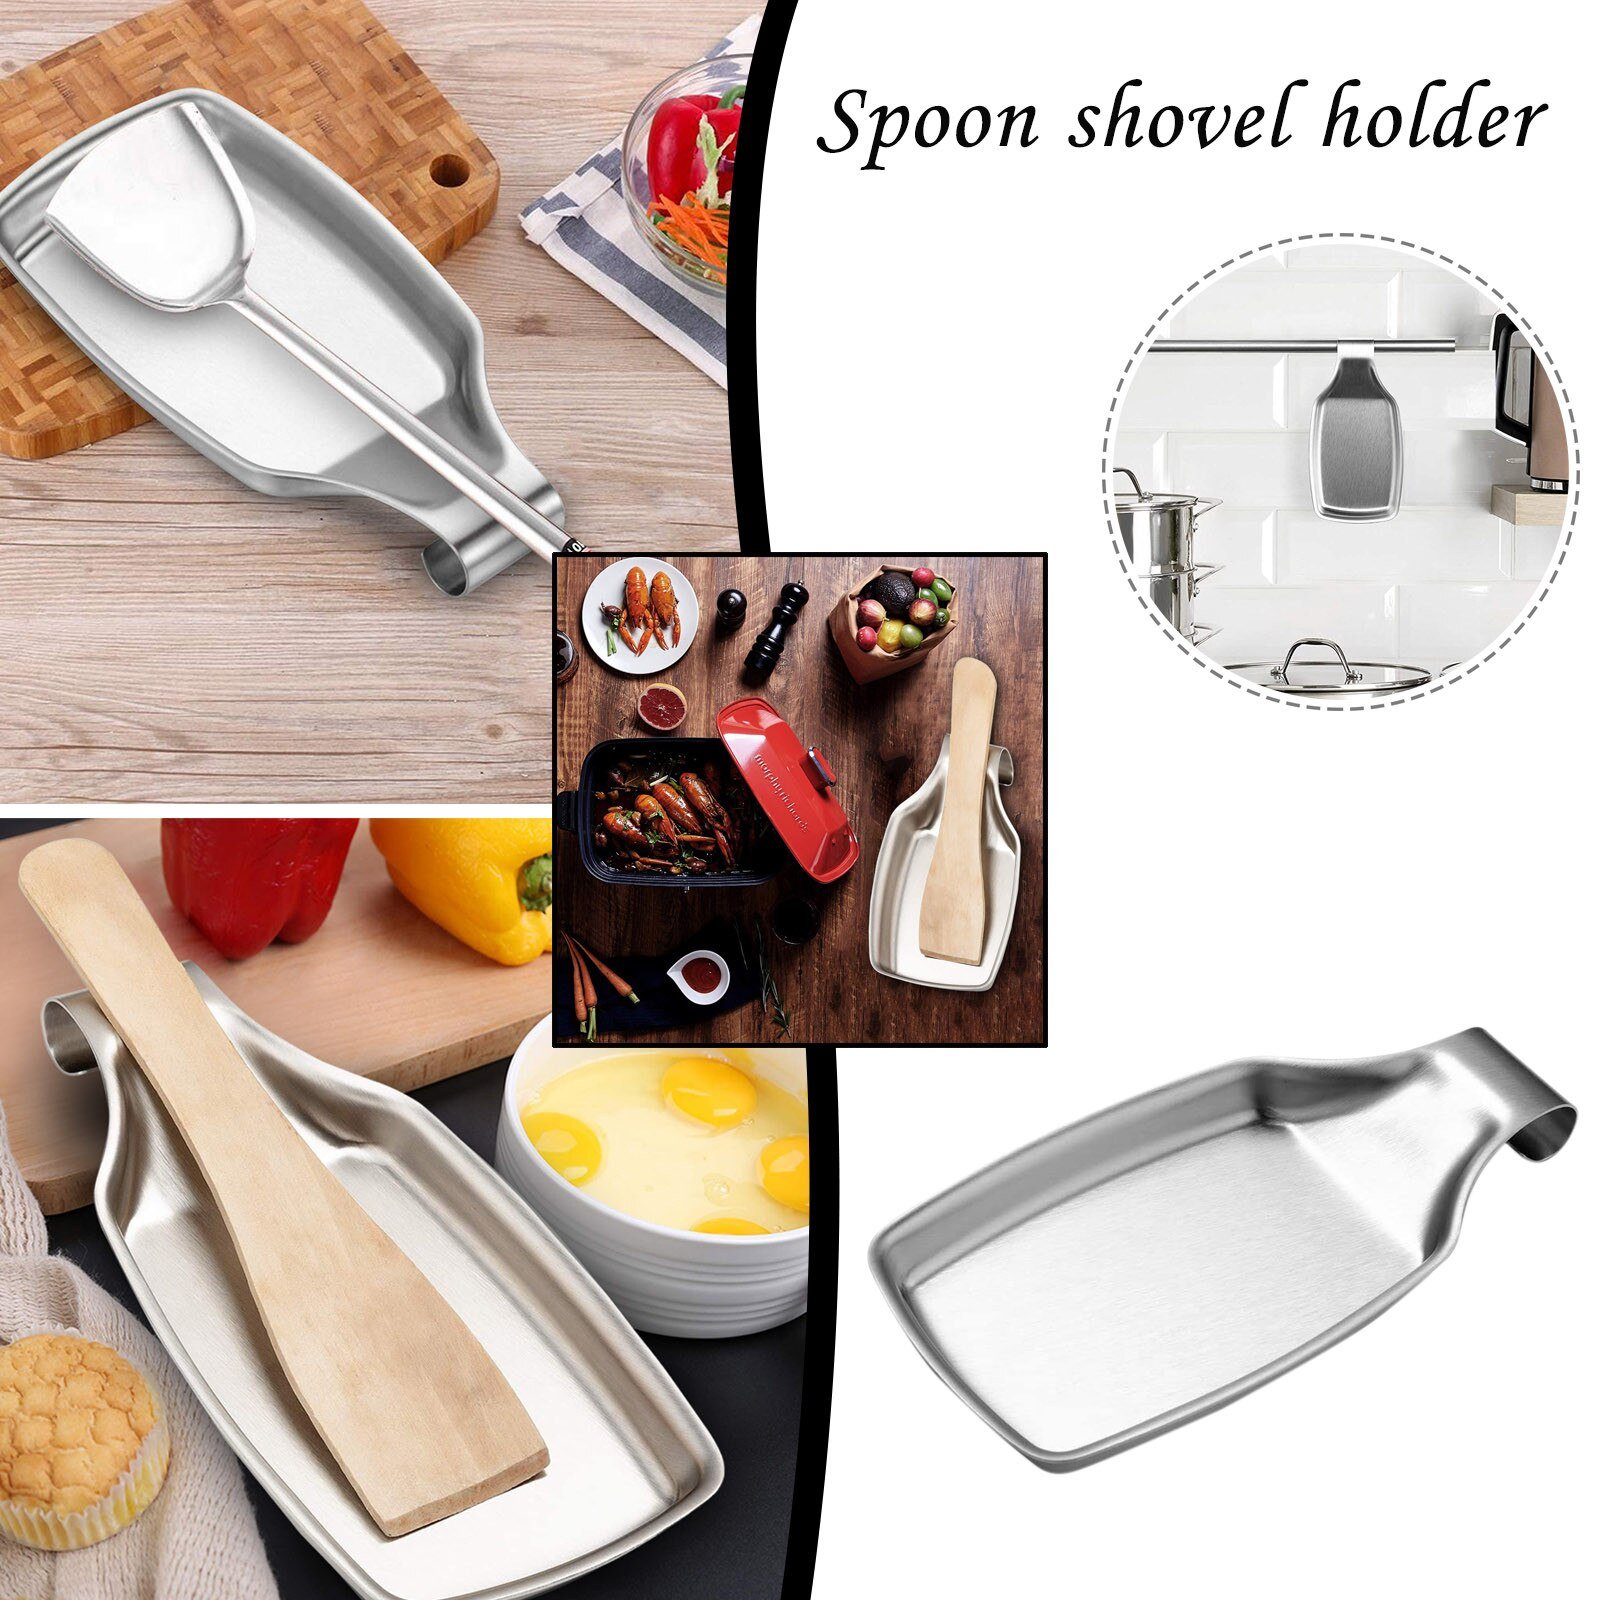 Rust Stainless Steel Spoon Holder Kitchen Spoon Spatula Leaky Kitchenware Holder Kitchen Utensil Durable Rice Spoon Support Pad